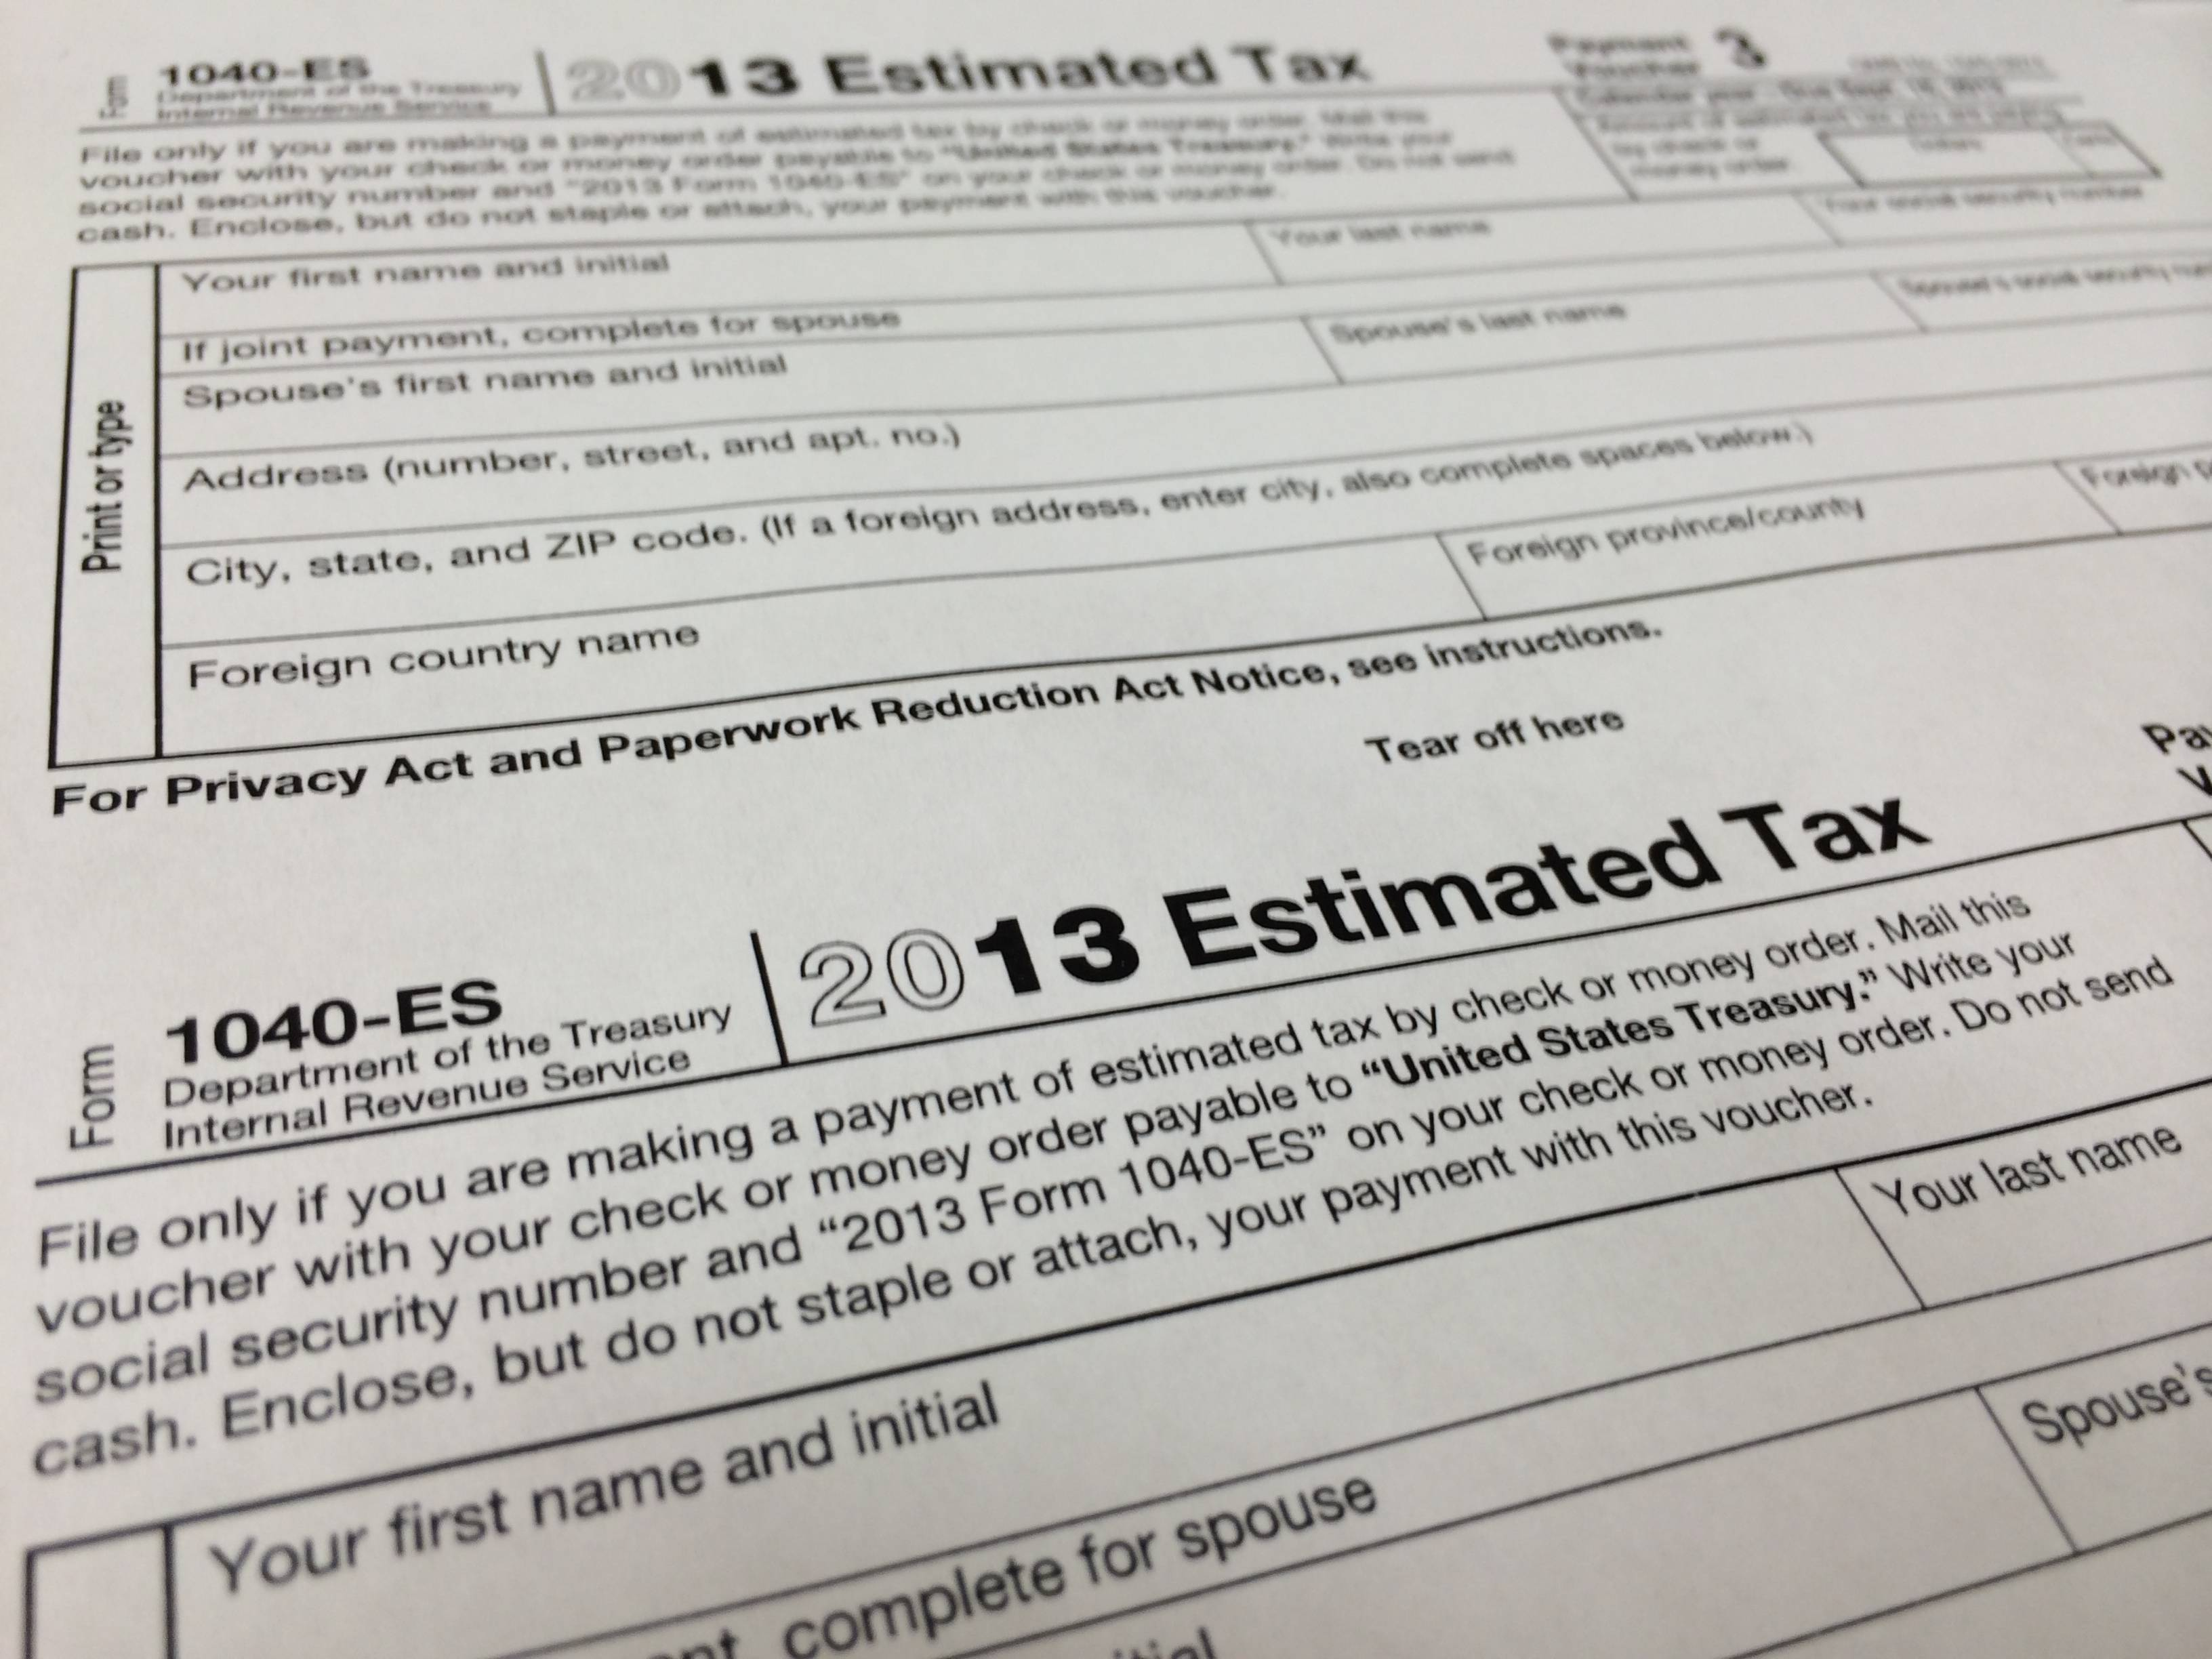 Personal exemptions are worth $3,900 on your 2013 federal income taxes.